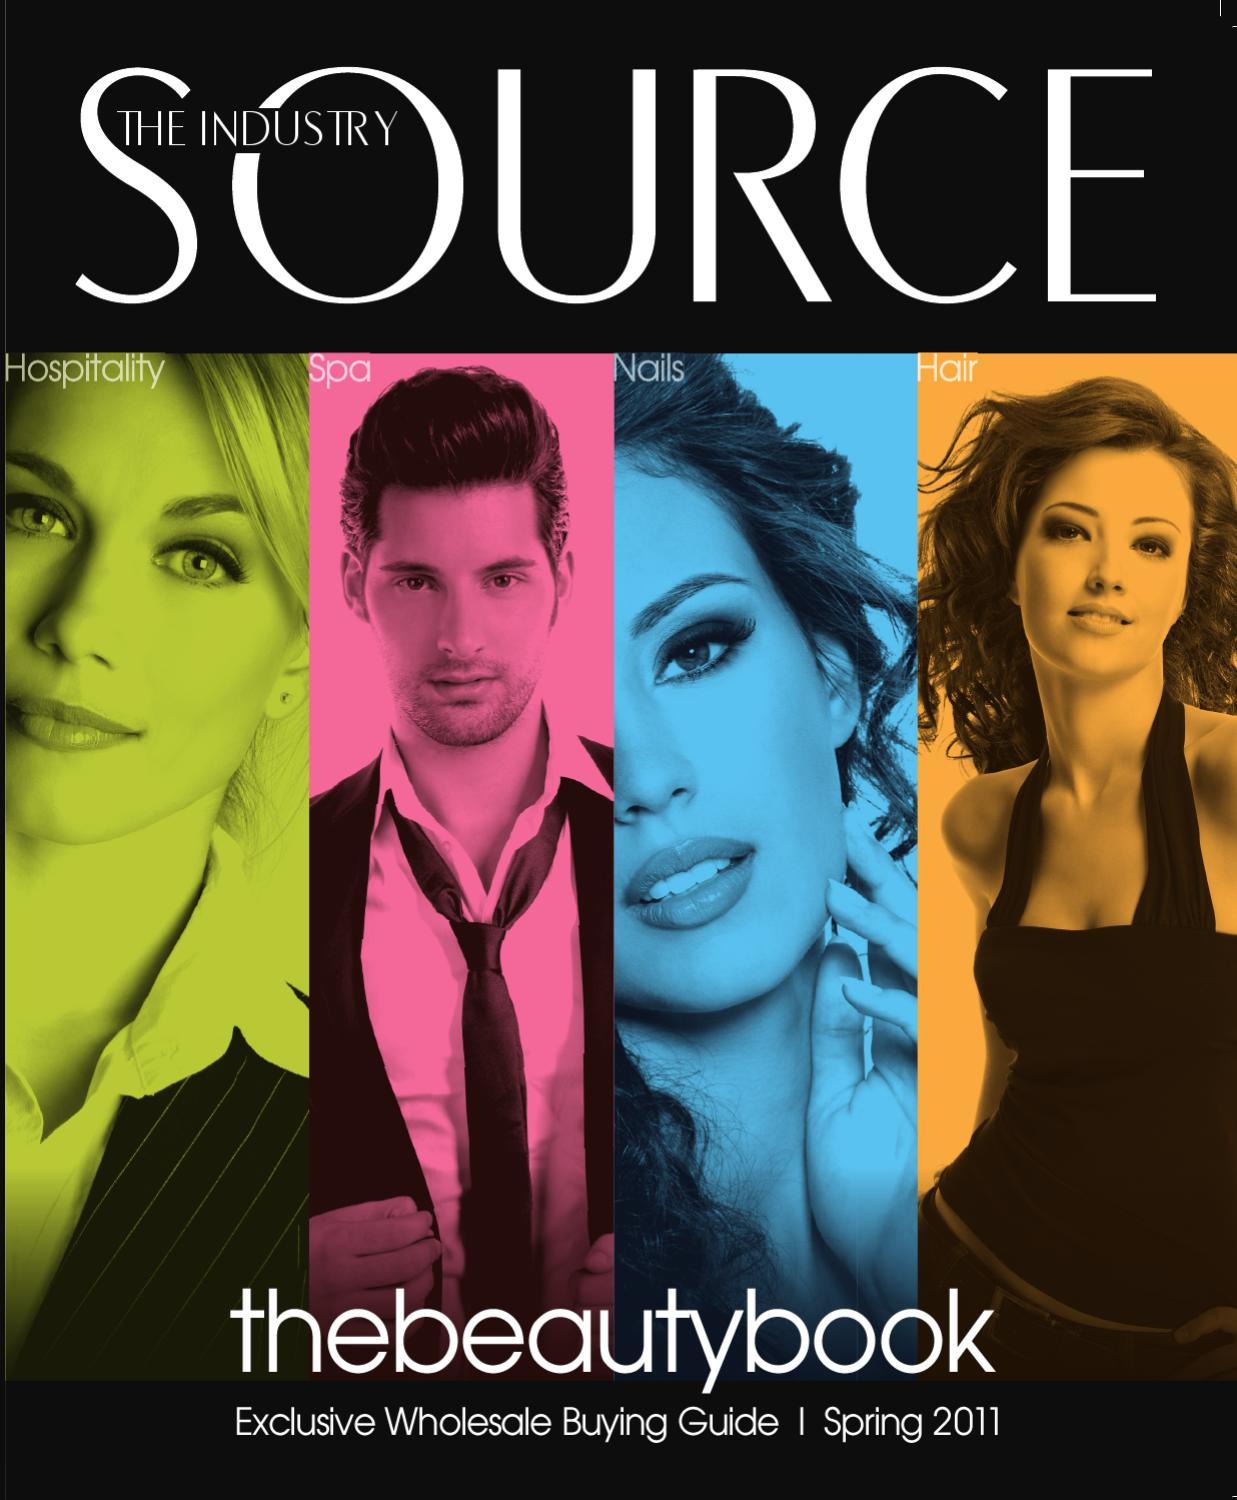 25bda93b25d8 The Industry Source Spring 2011 the beautybook by TNG Worldwide - issuu